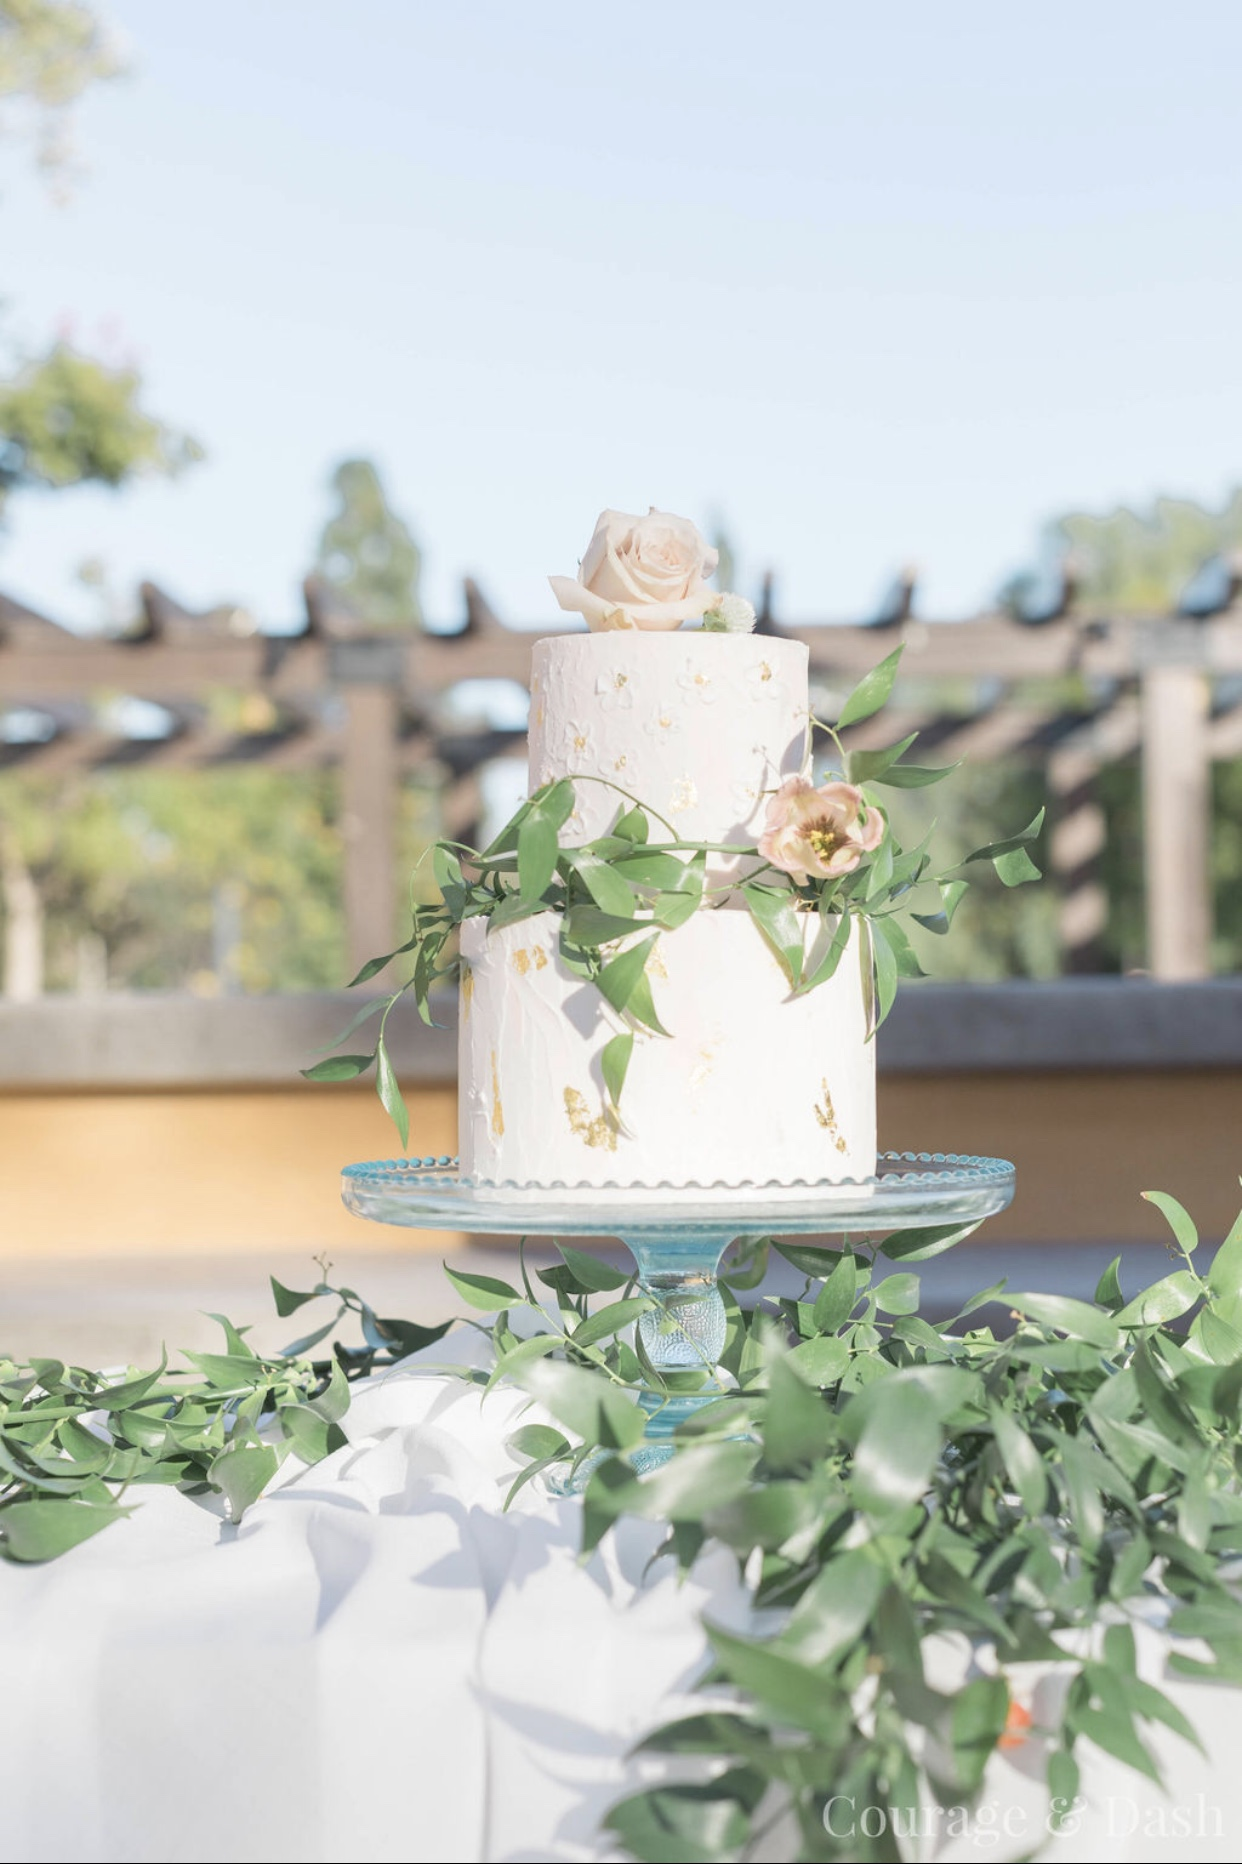 Peach royal icing cake with fresh flowers